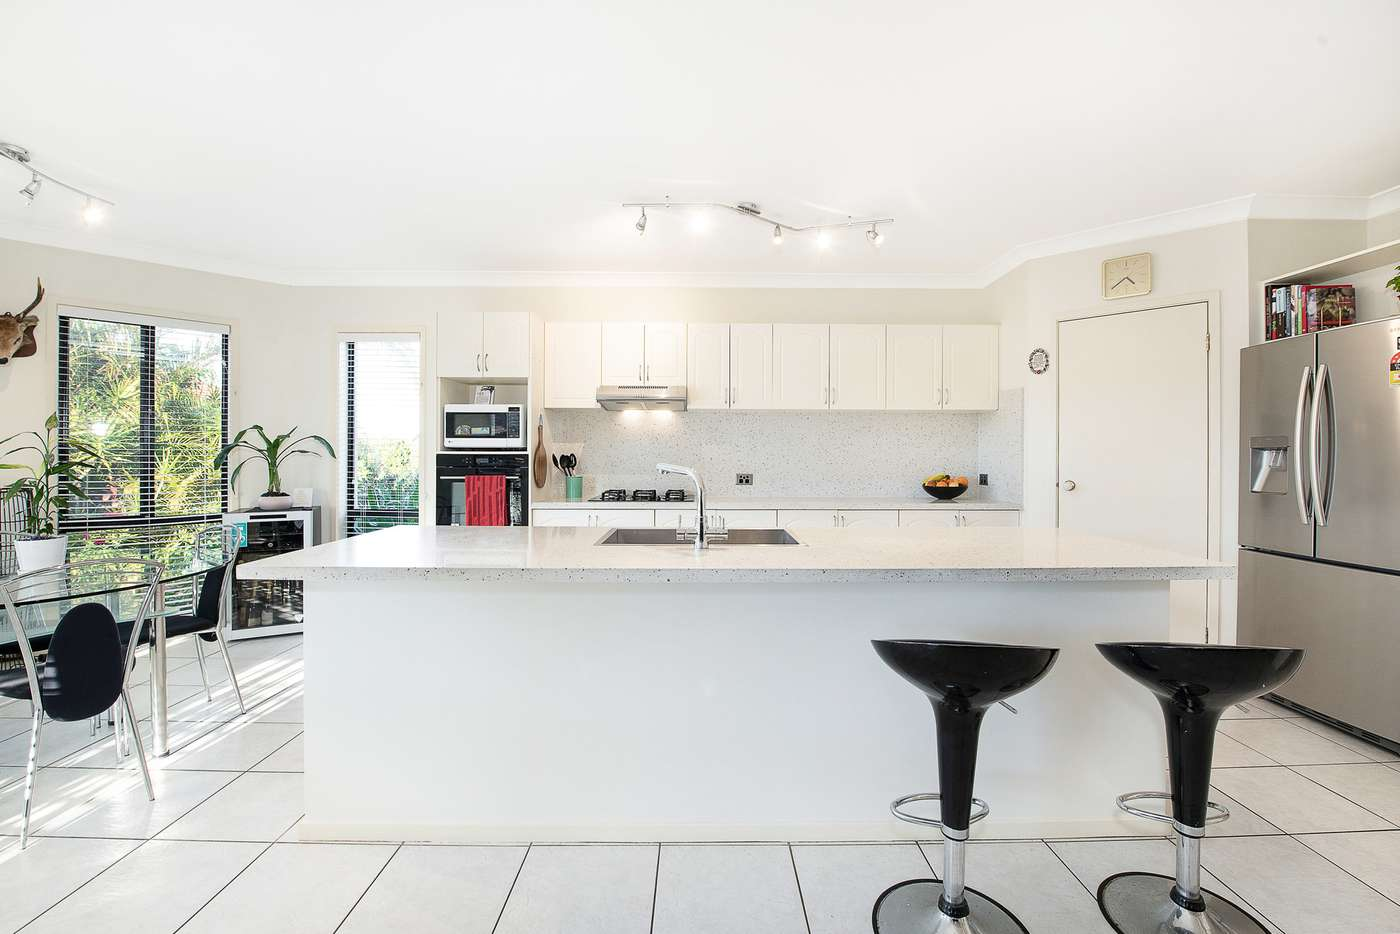 Fifth view of Homely house listing, 2 Alpine Way, Glenwood NSW 2768